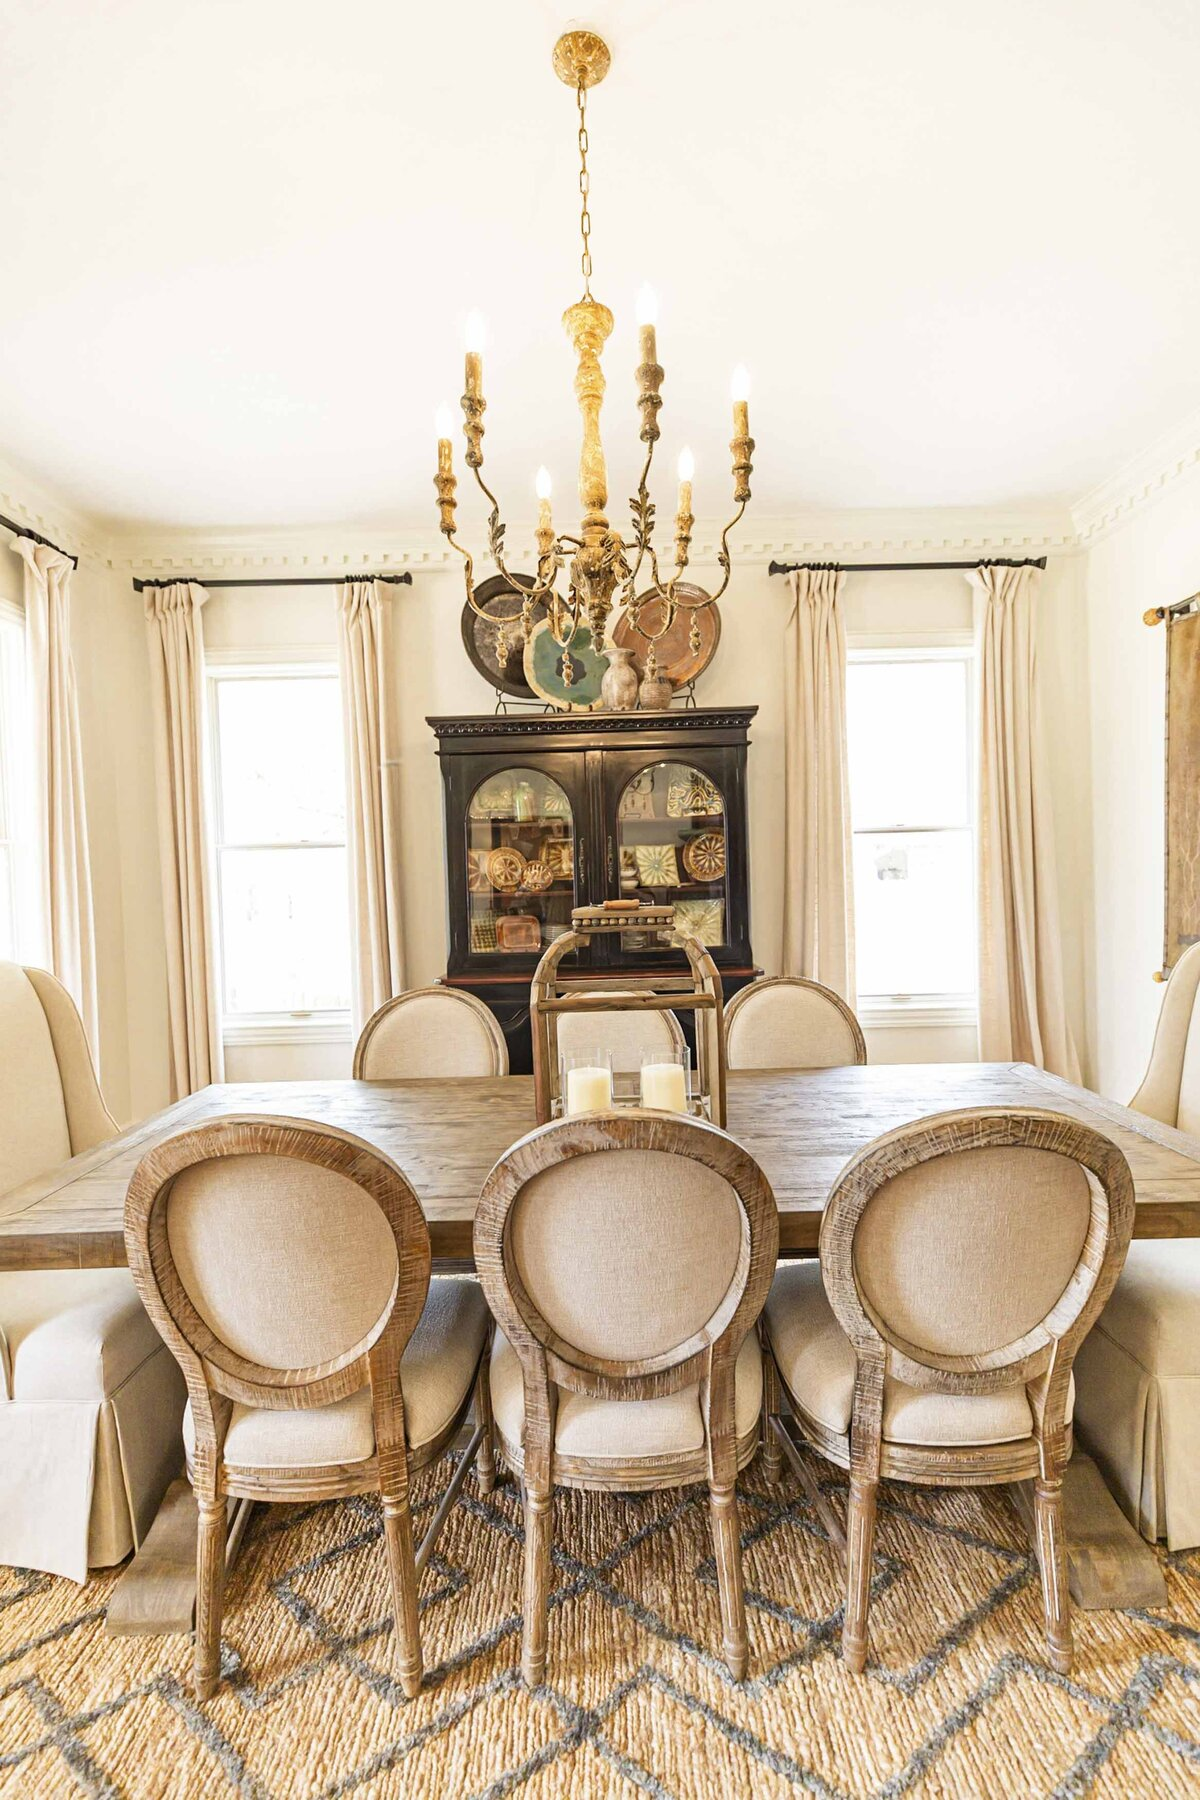 bright-dining-room-decor-textures-character-crown-molding21